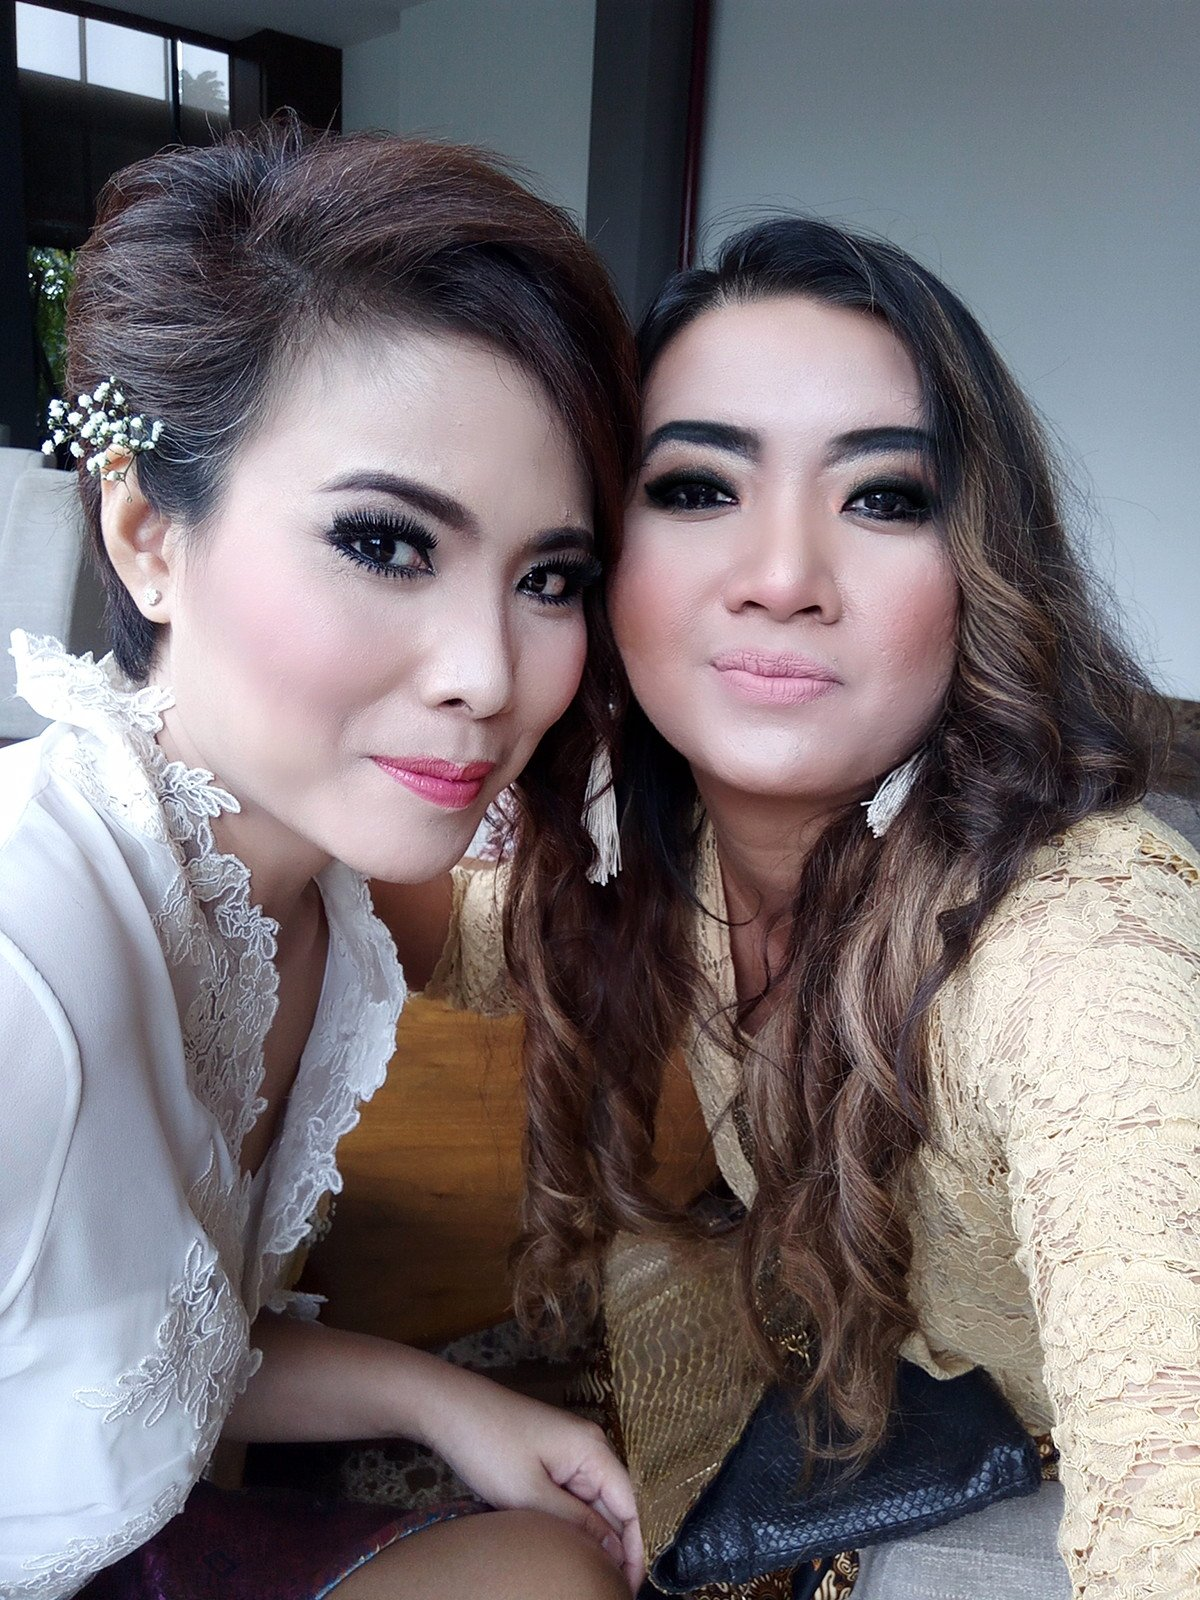 My bestfriend's wedding �� https://t.co/6PqoaAp7o8